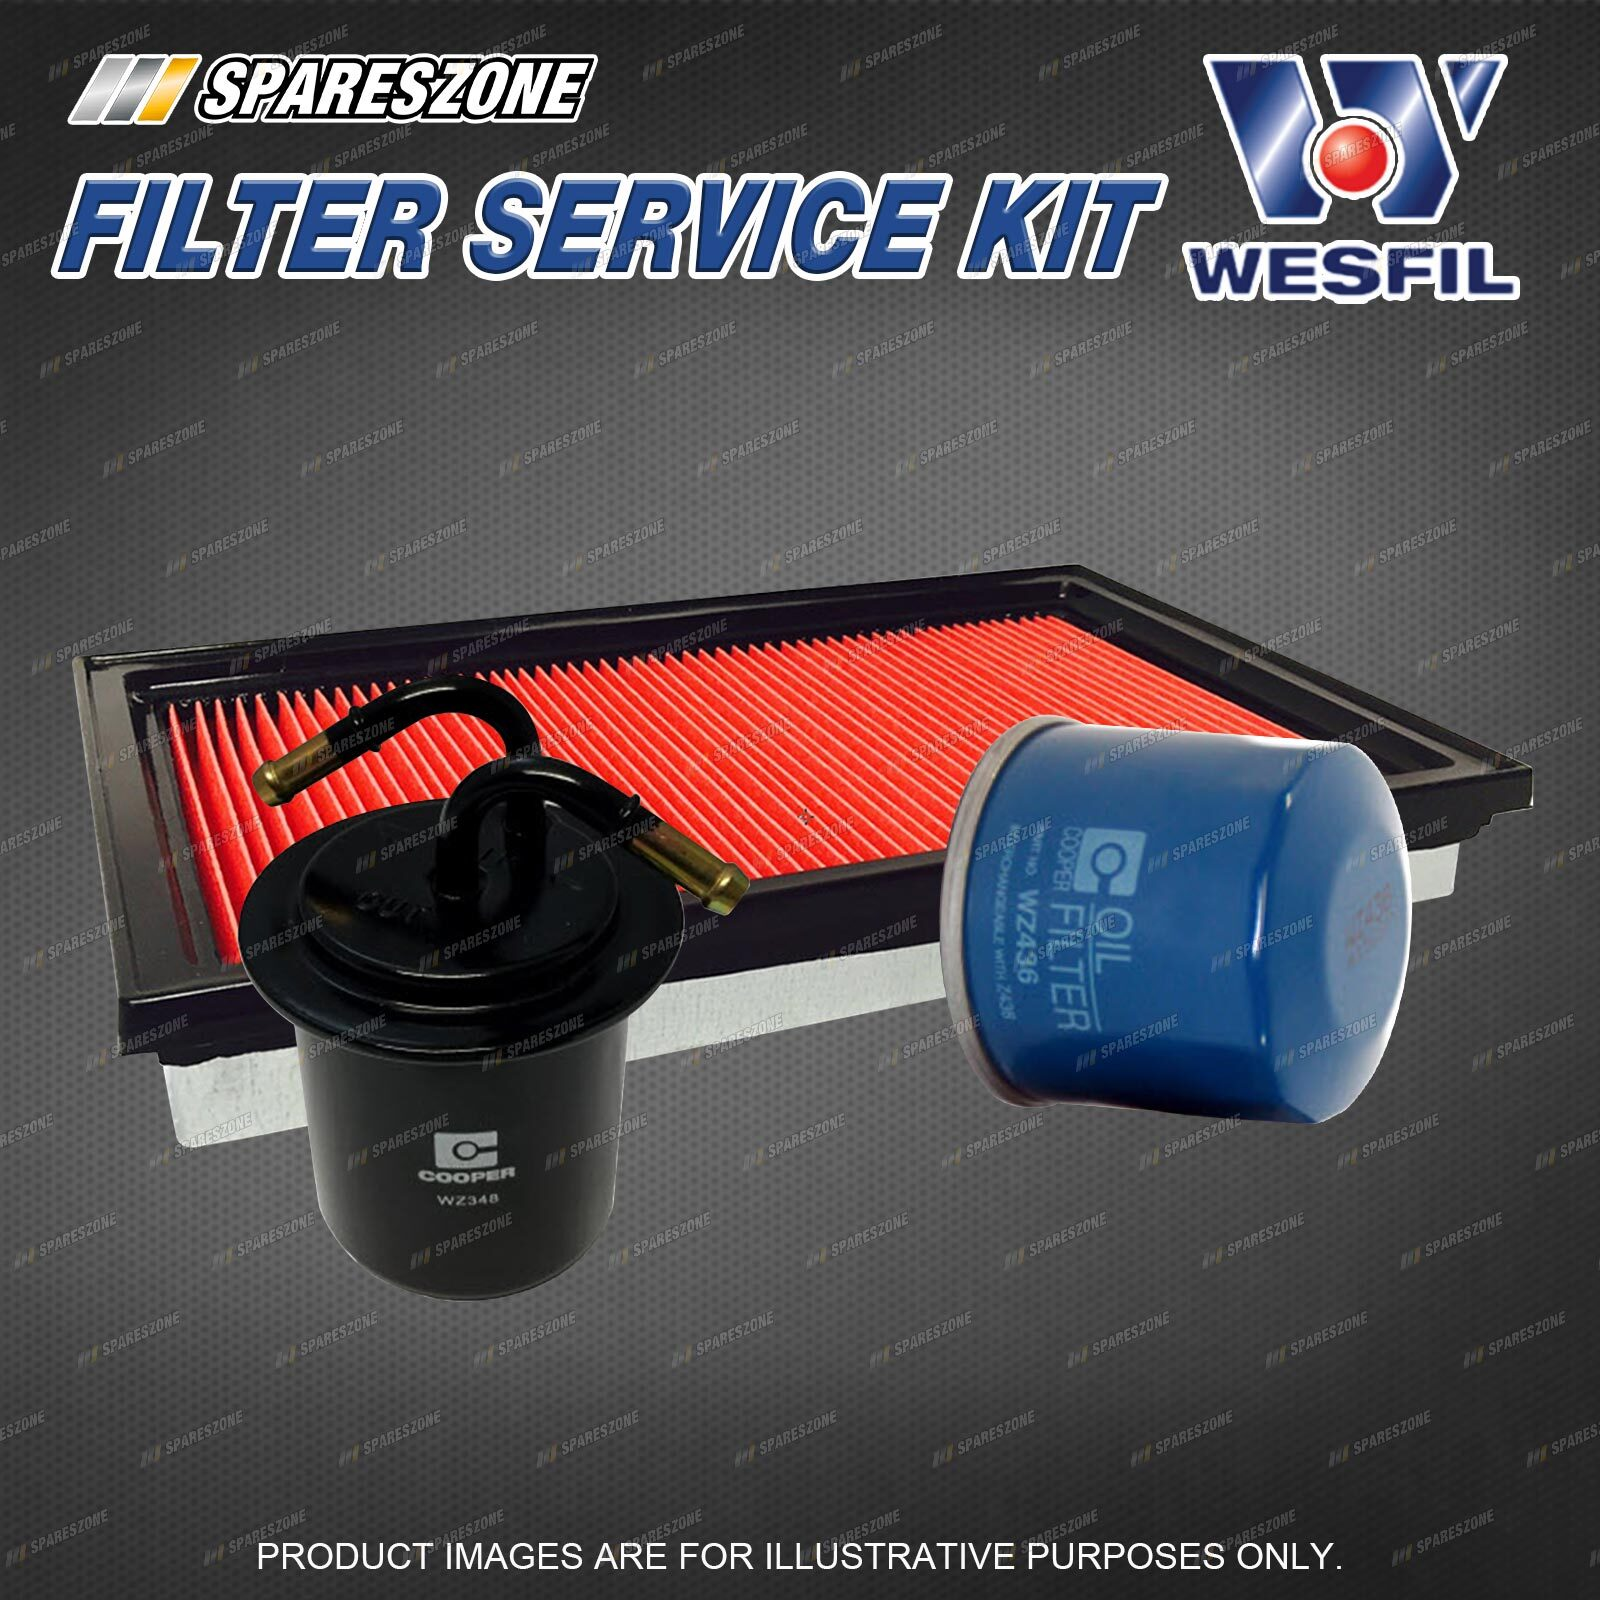 hight resolution of details about wesfil oil air fuel filter service kit for subaru forester sg9 2 5 impreza gg9